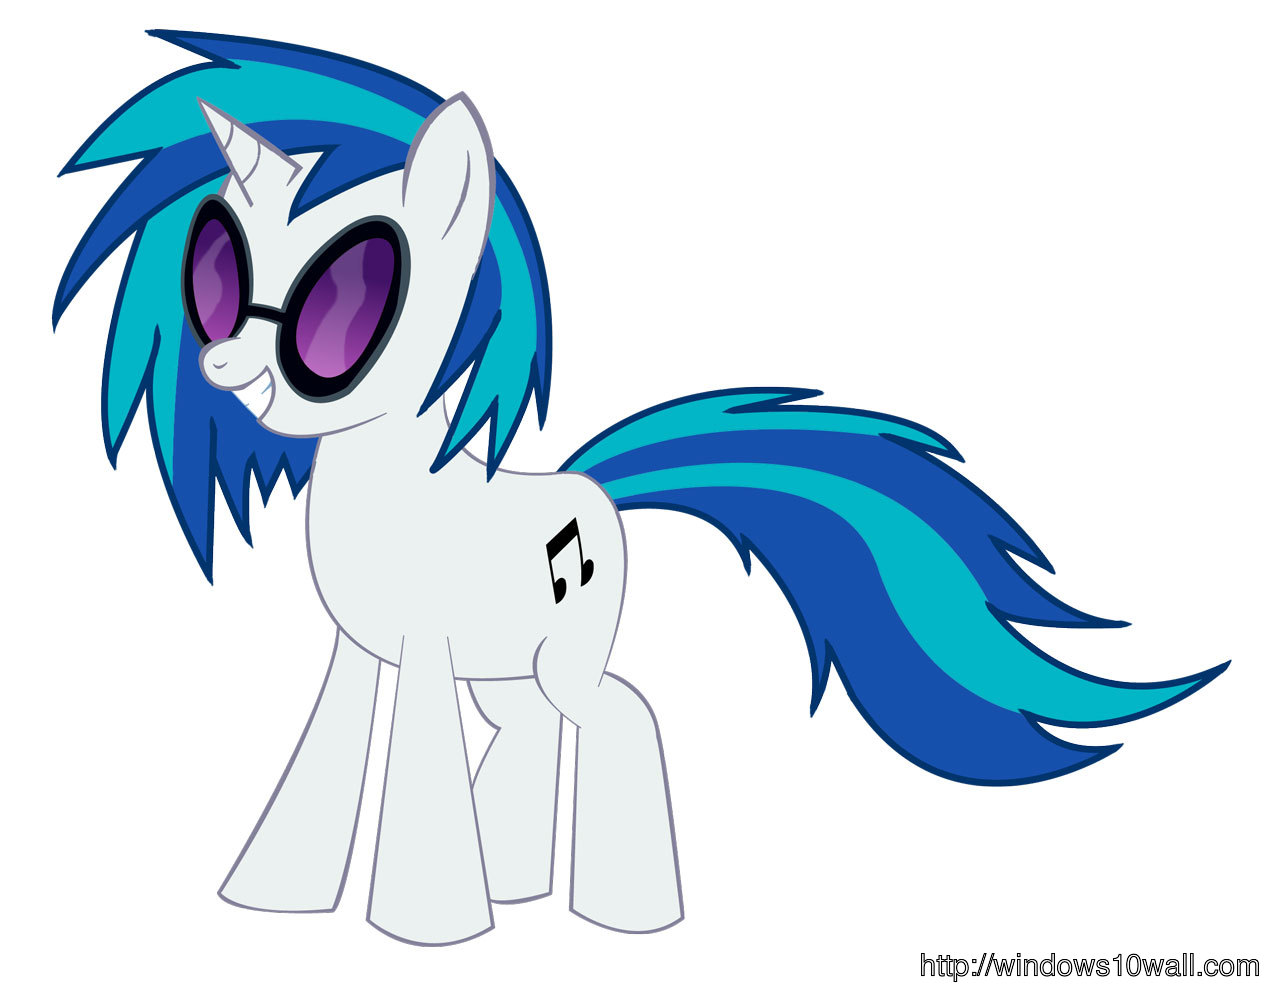 Vinyl Scratch White Background Wallpaper